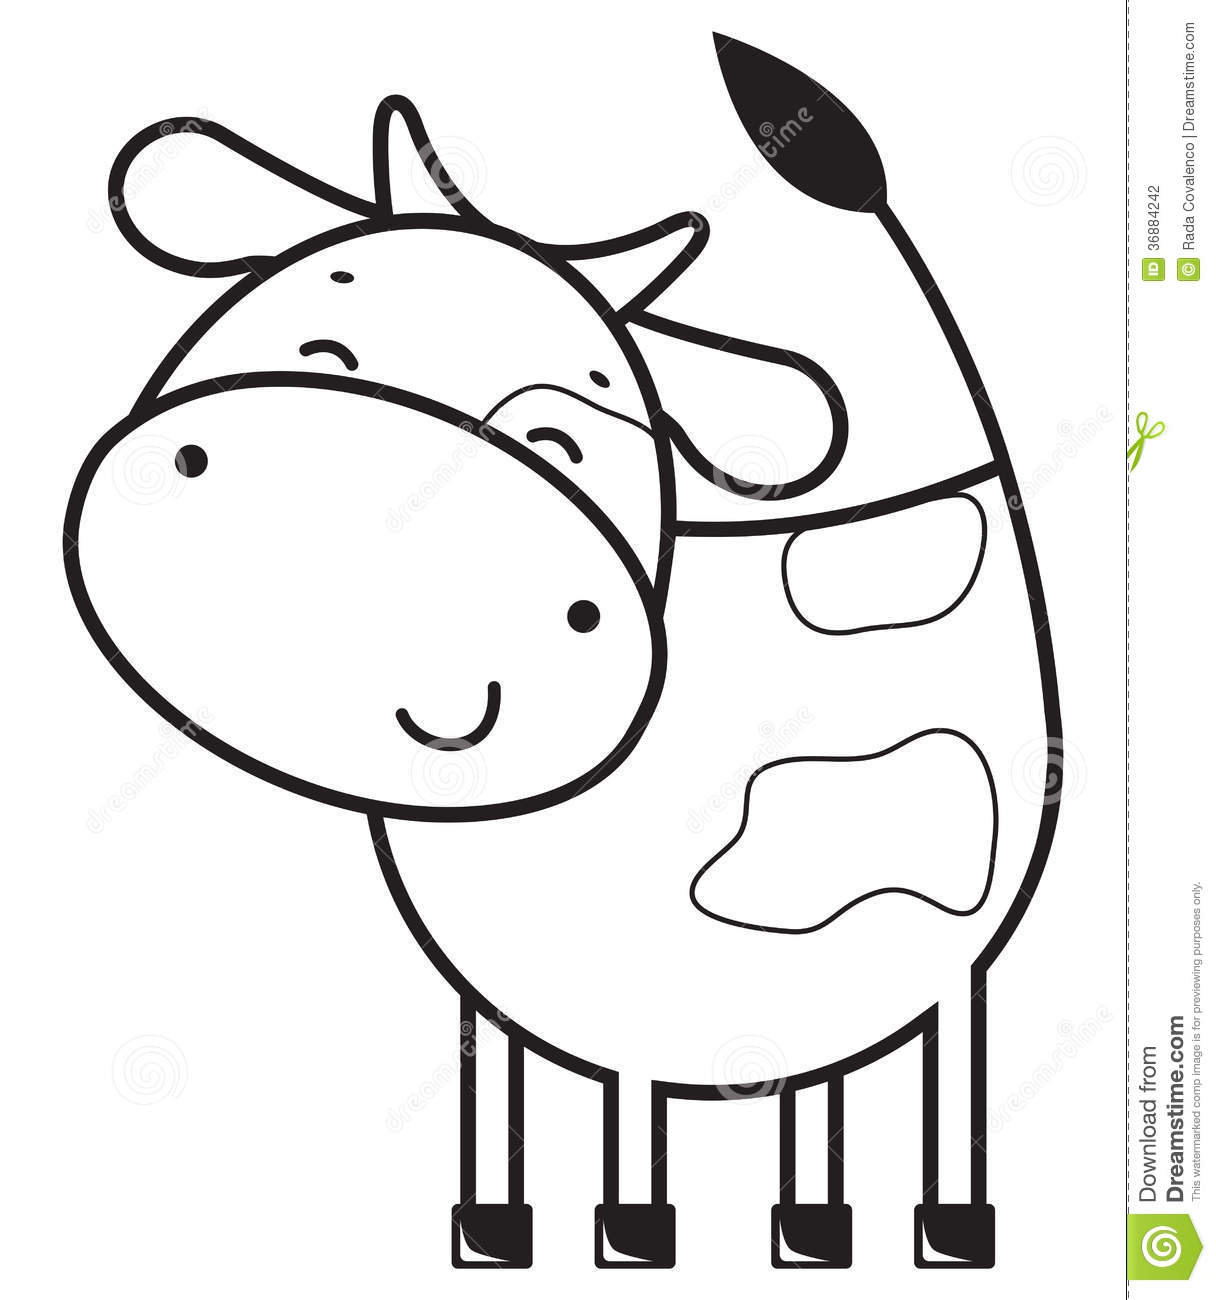 Funny Outline Cow Stock Photography Image 36884242